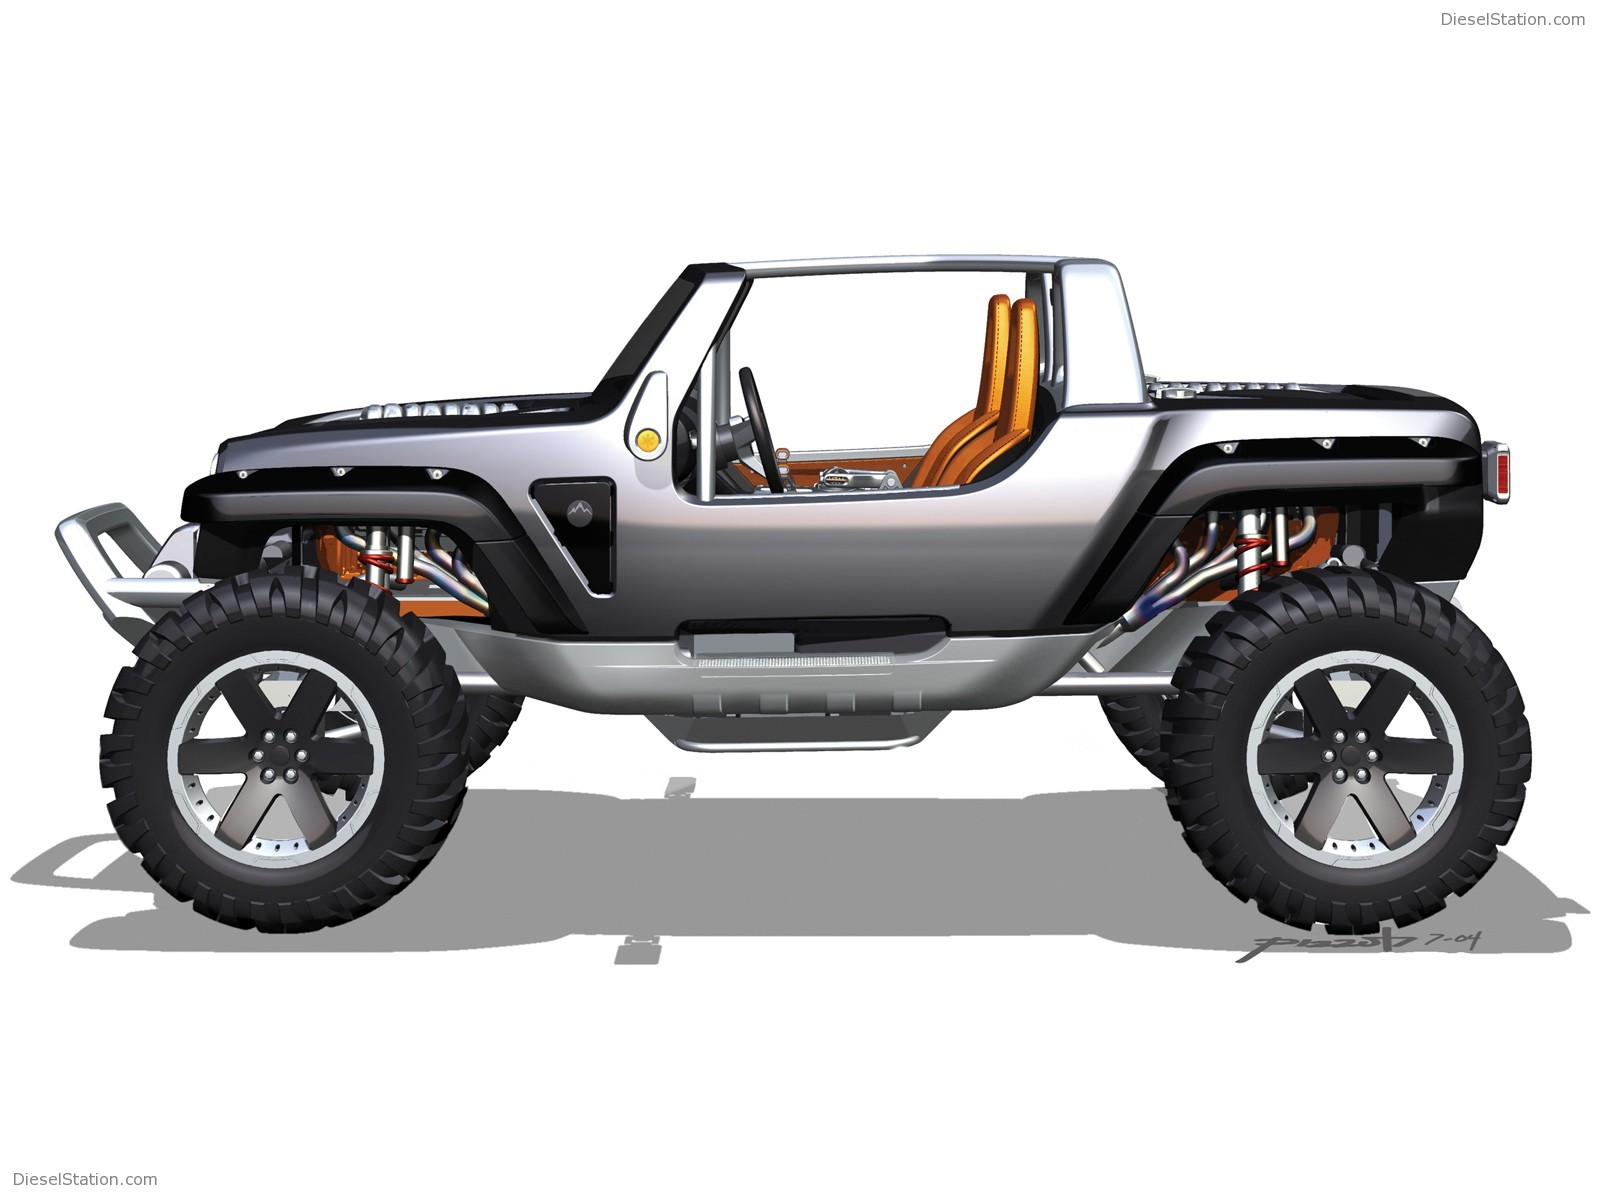 2019 Jeep Hurricane Concept photo - 3